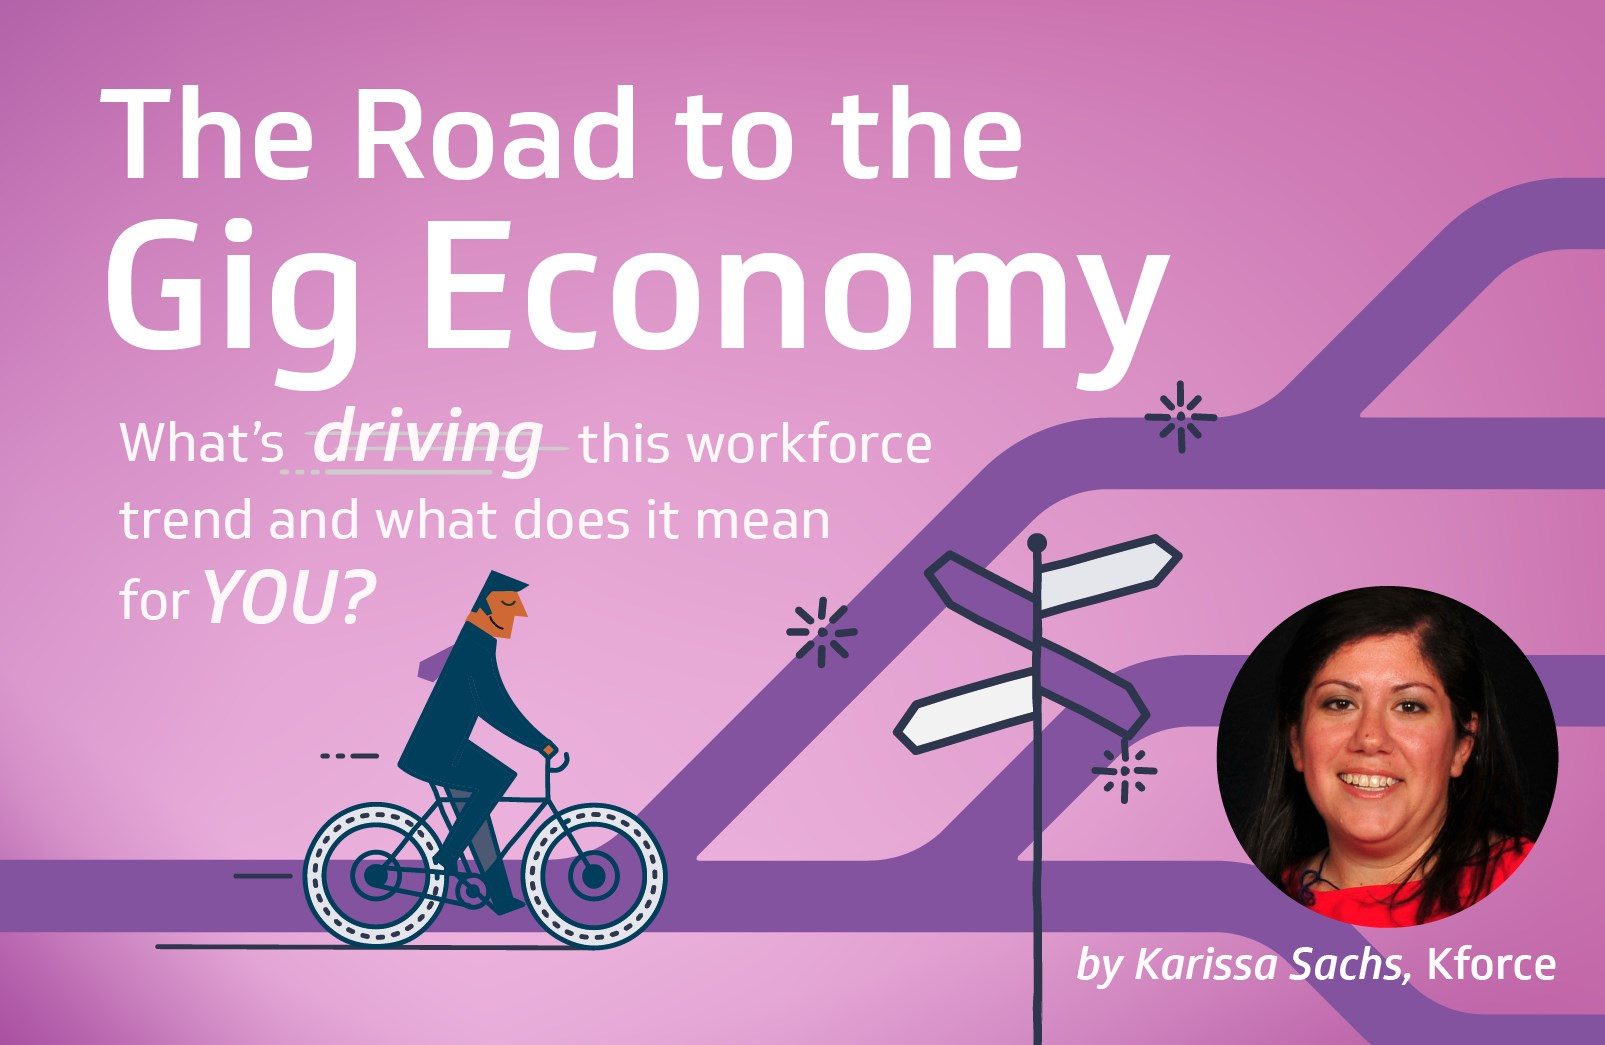 The road to the gig economy